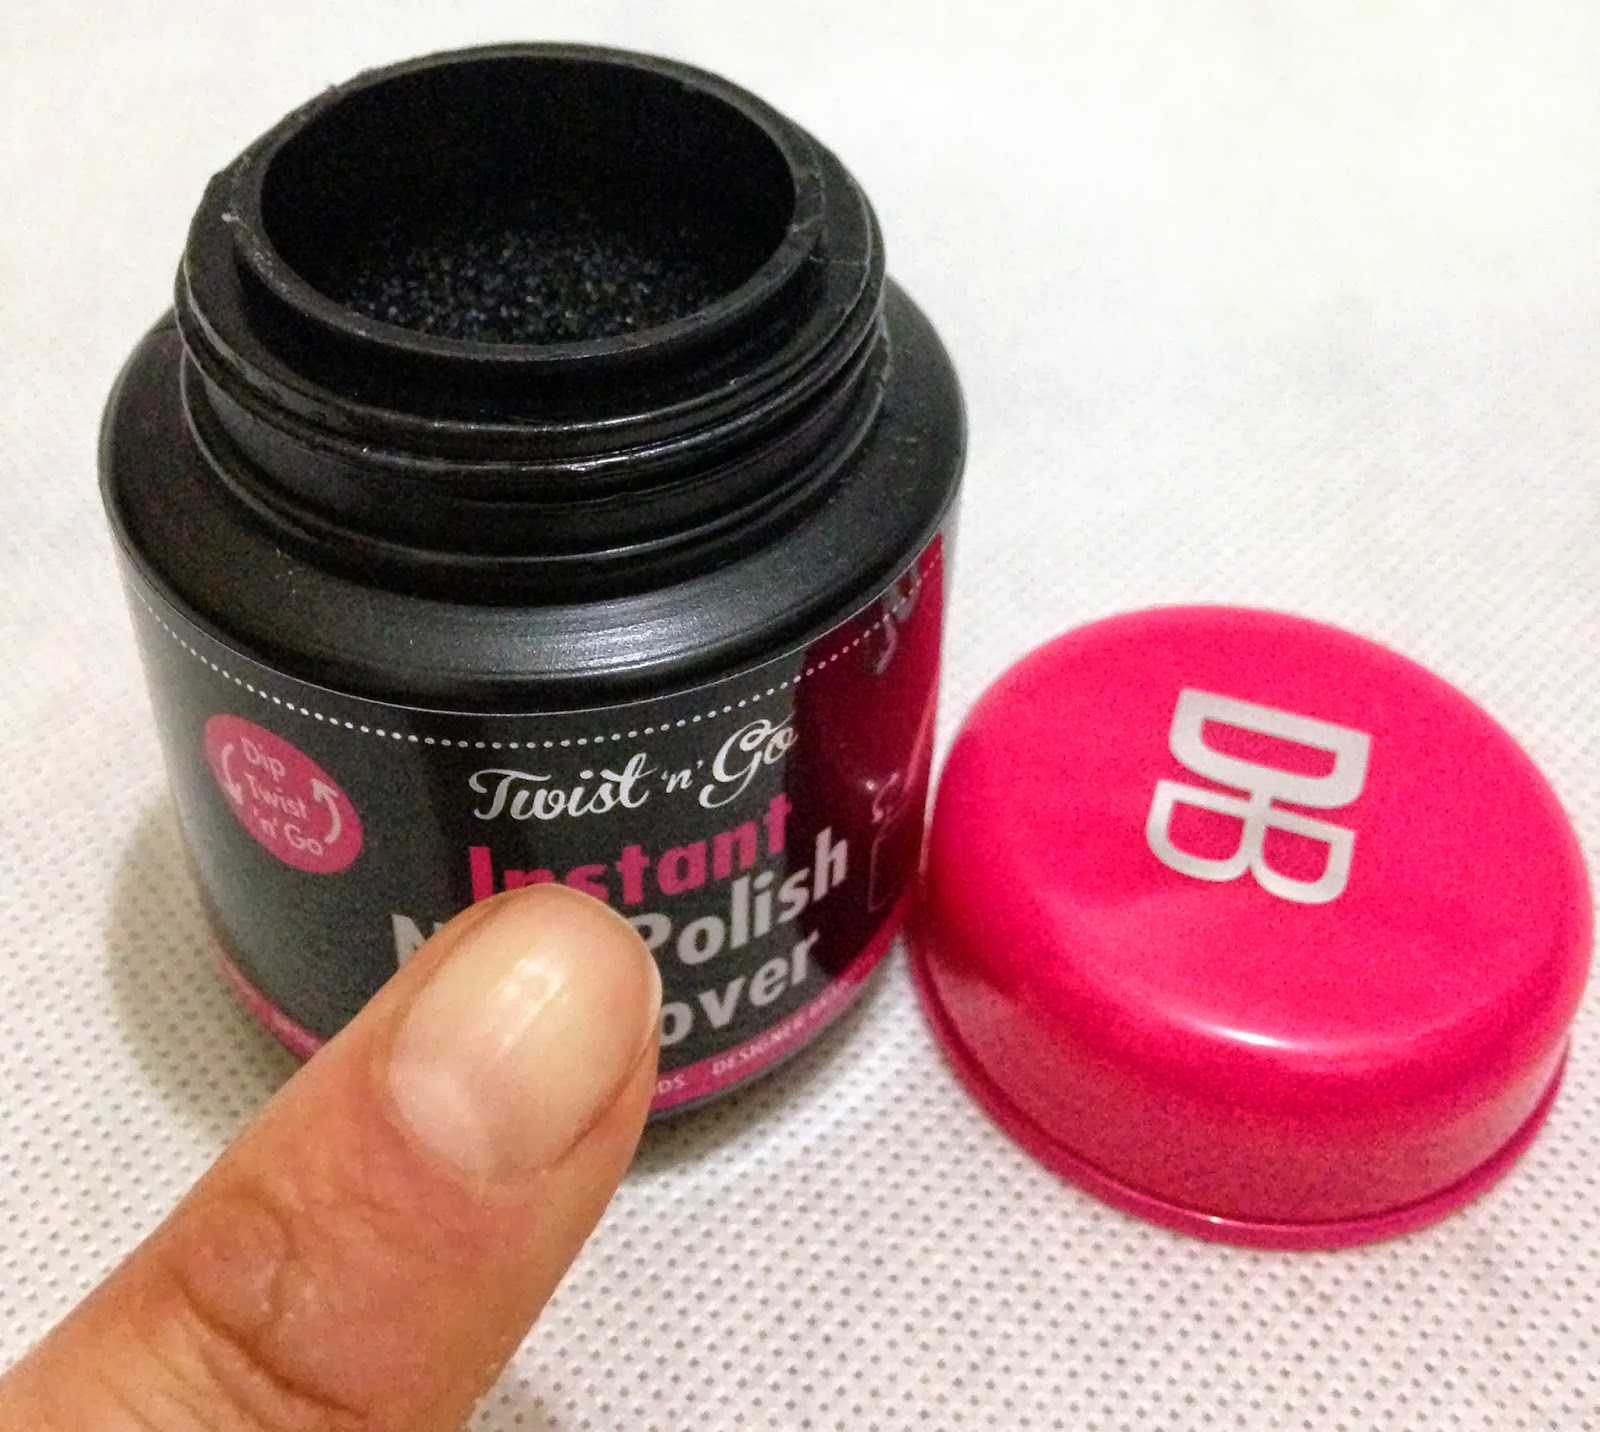 How Long Does Nail Polish Remover Last: Substance For Belle.: Twist 'n' Go Instant Nail Polish Remover